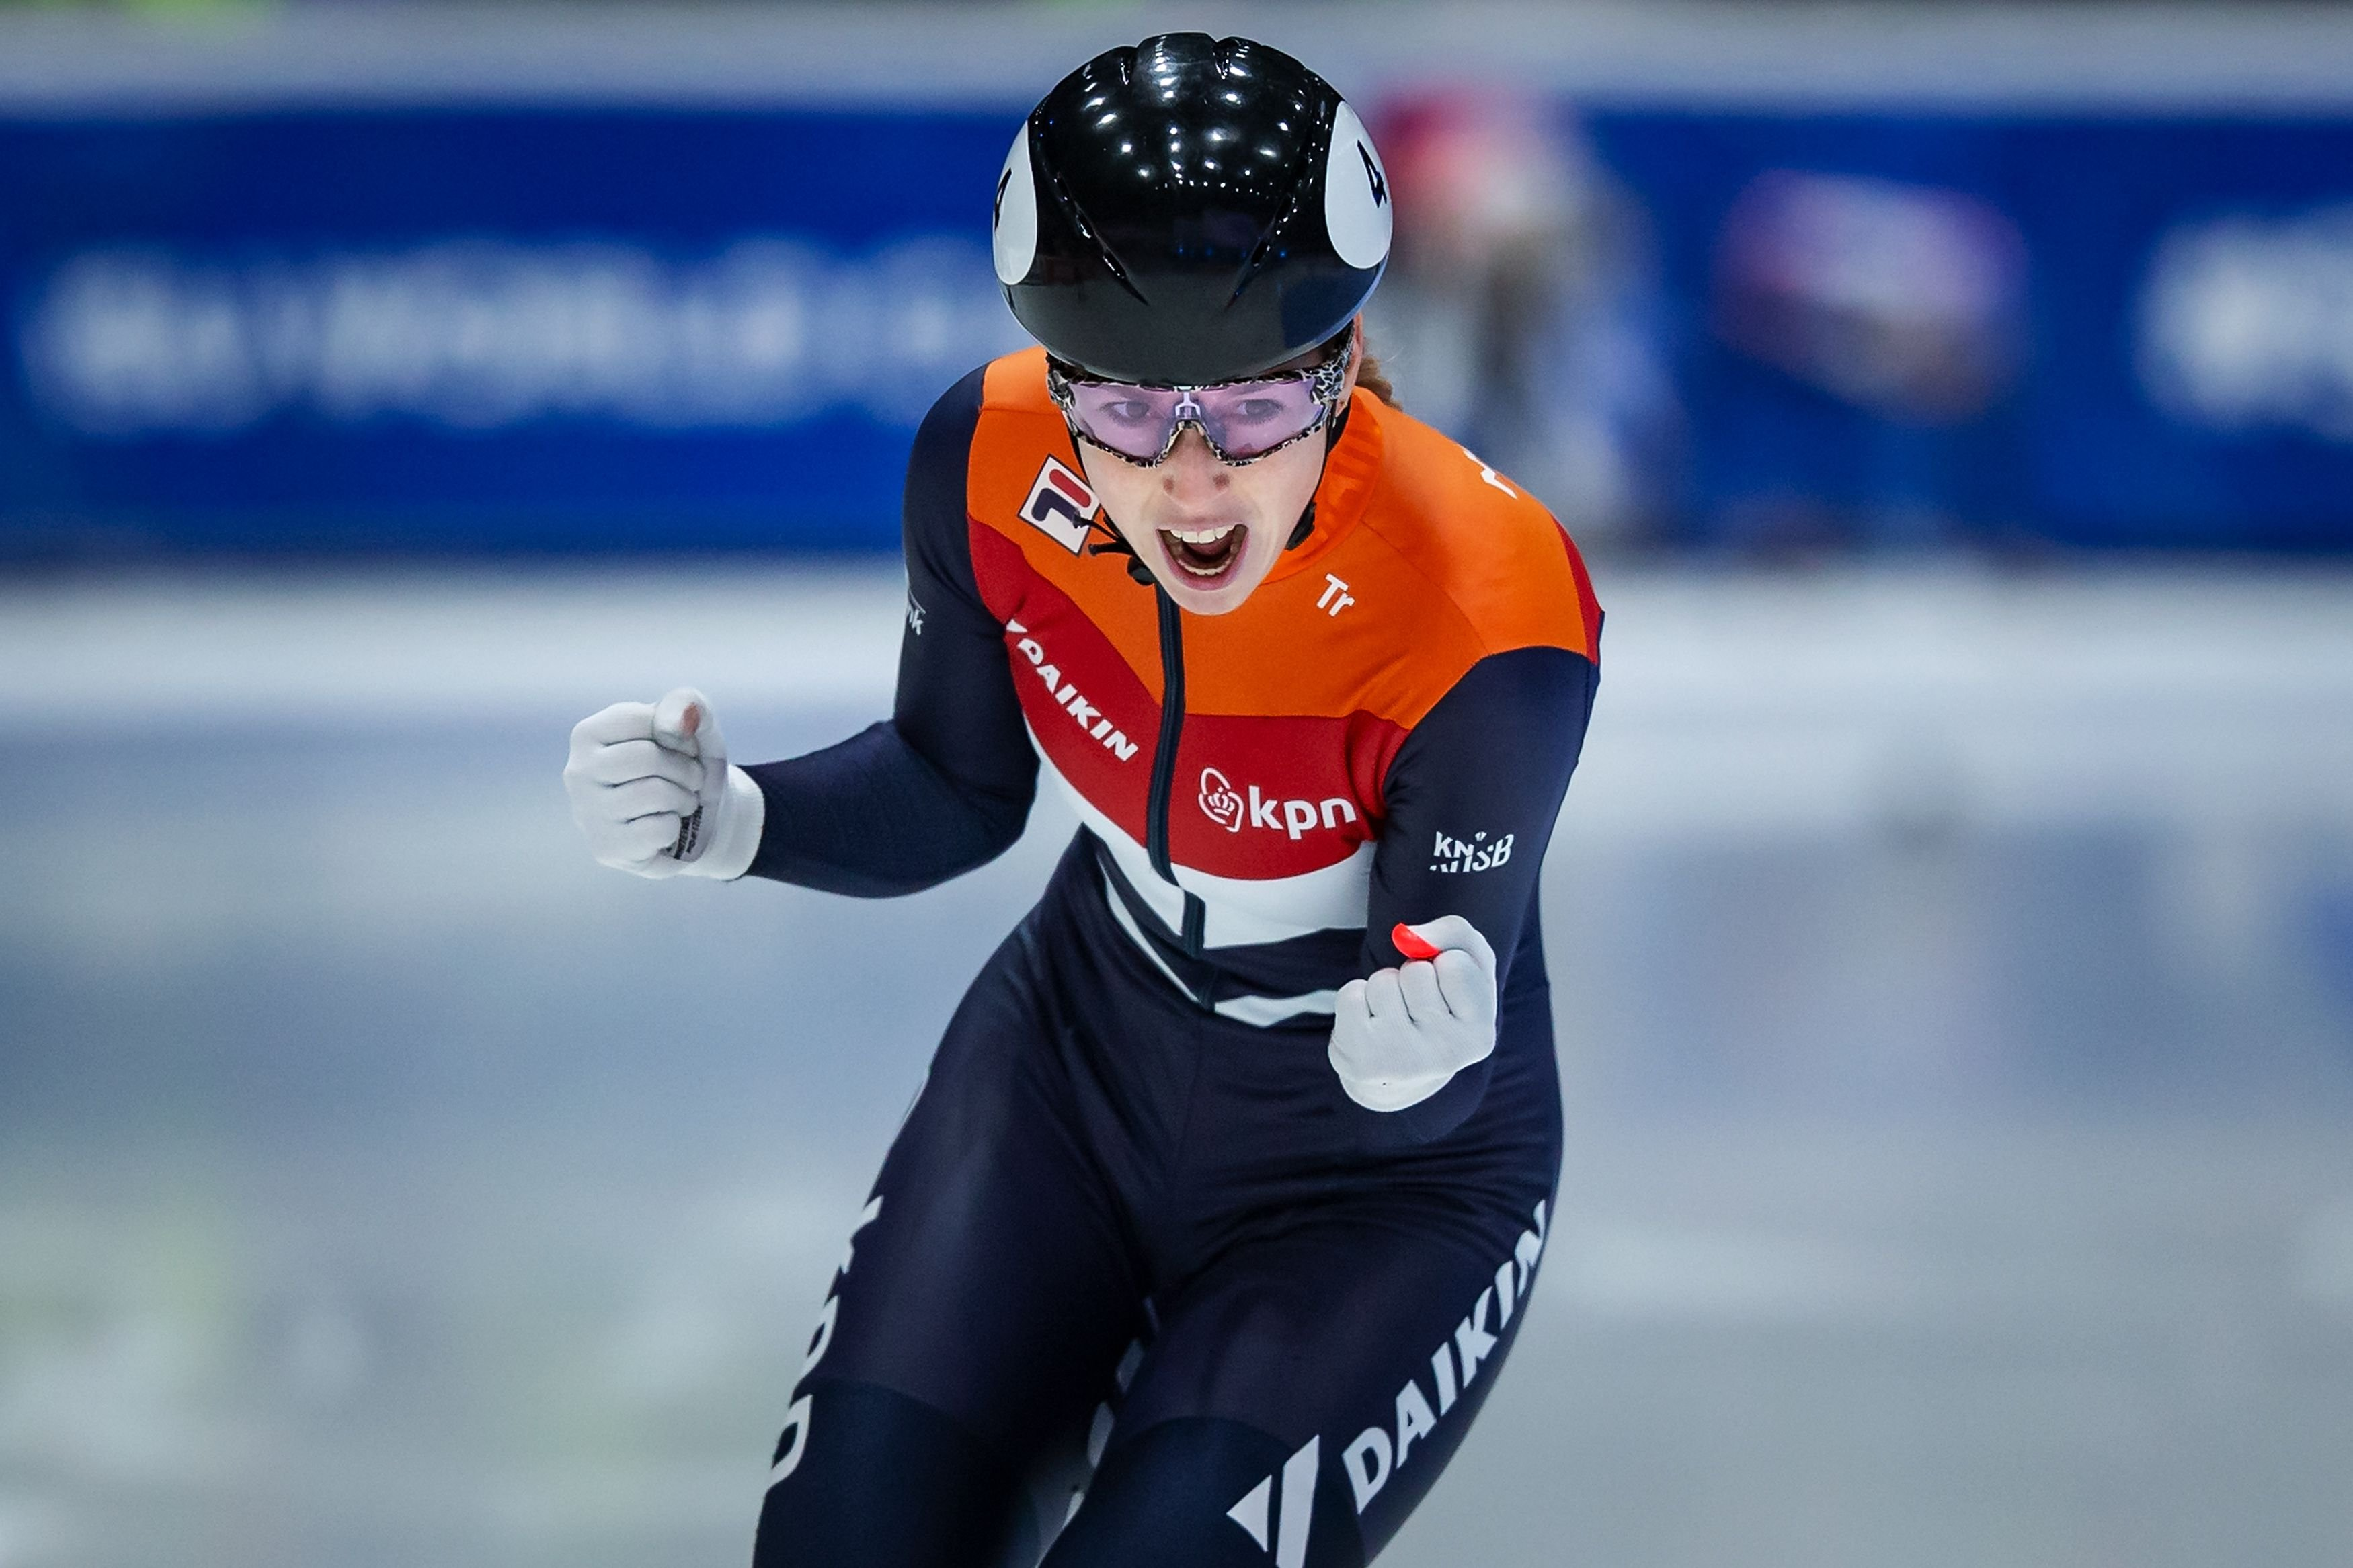 Lara van Ruijven of Netherlands celebrates in the Ladies 500m final during day 2 of the ISU World Cup Short Track at Sportboulevard on February 16, 2020 in Dordrecht, Netherlands | Photo: Getty Images